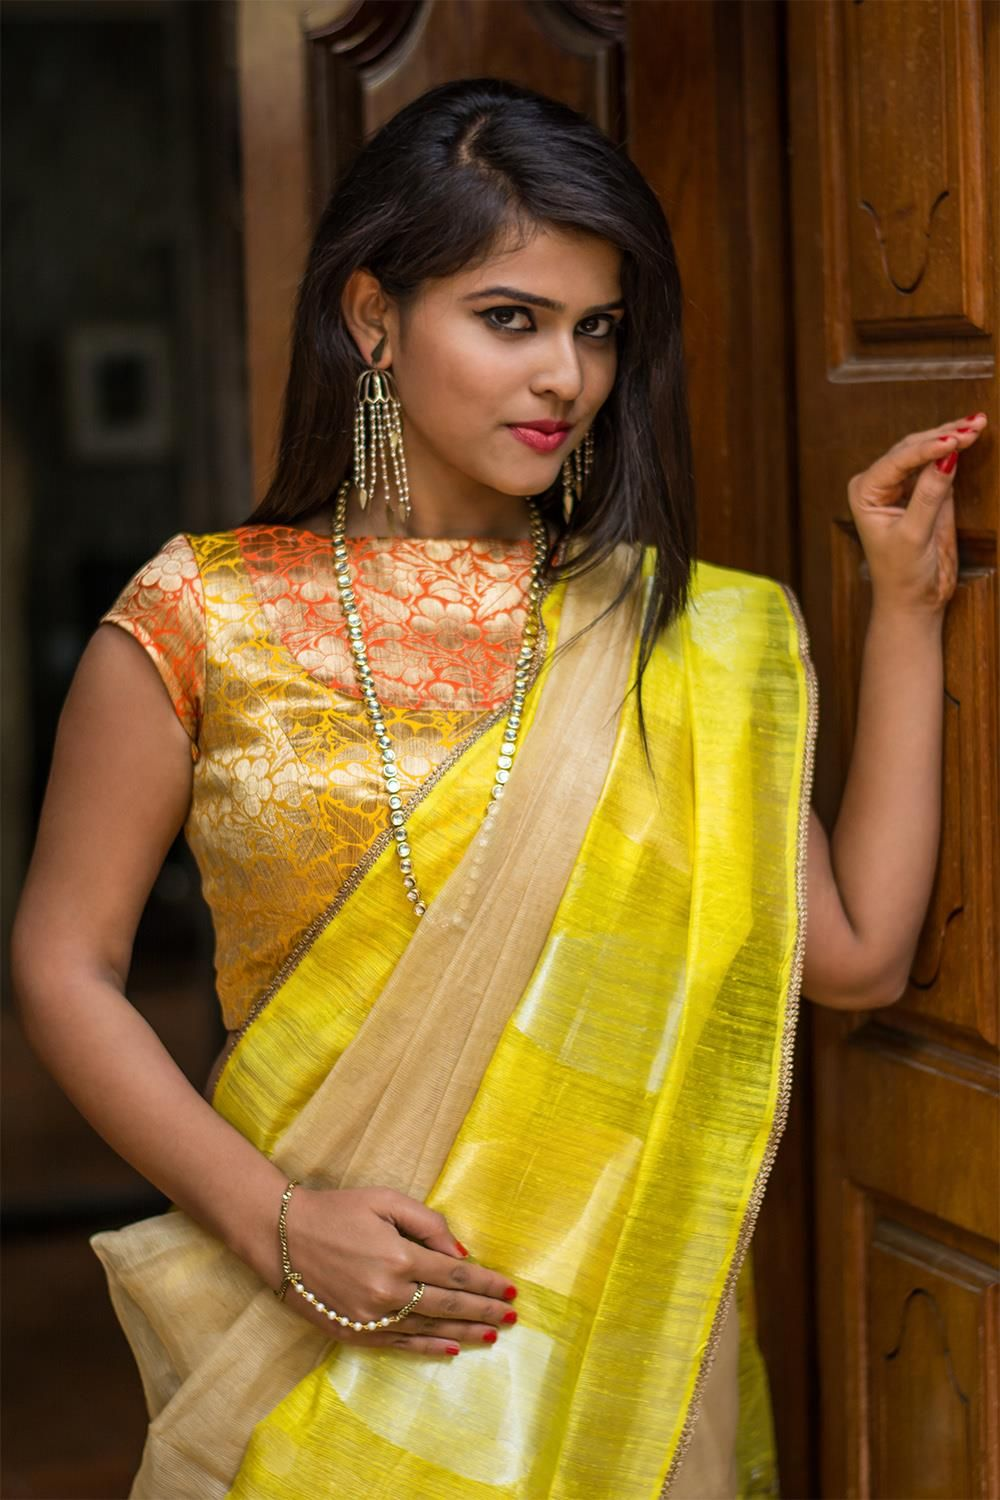 71b5ab3e17ec1 Yellow and orange brocade boat neck blouse with bib detail  blouse  banaras   brocade